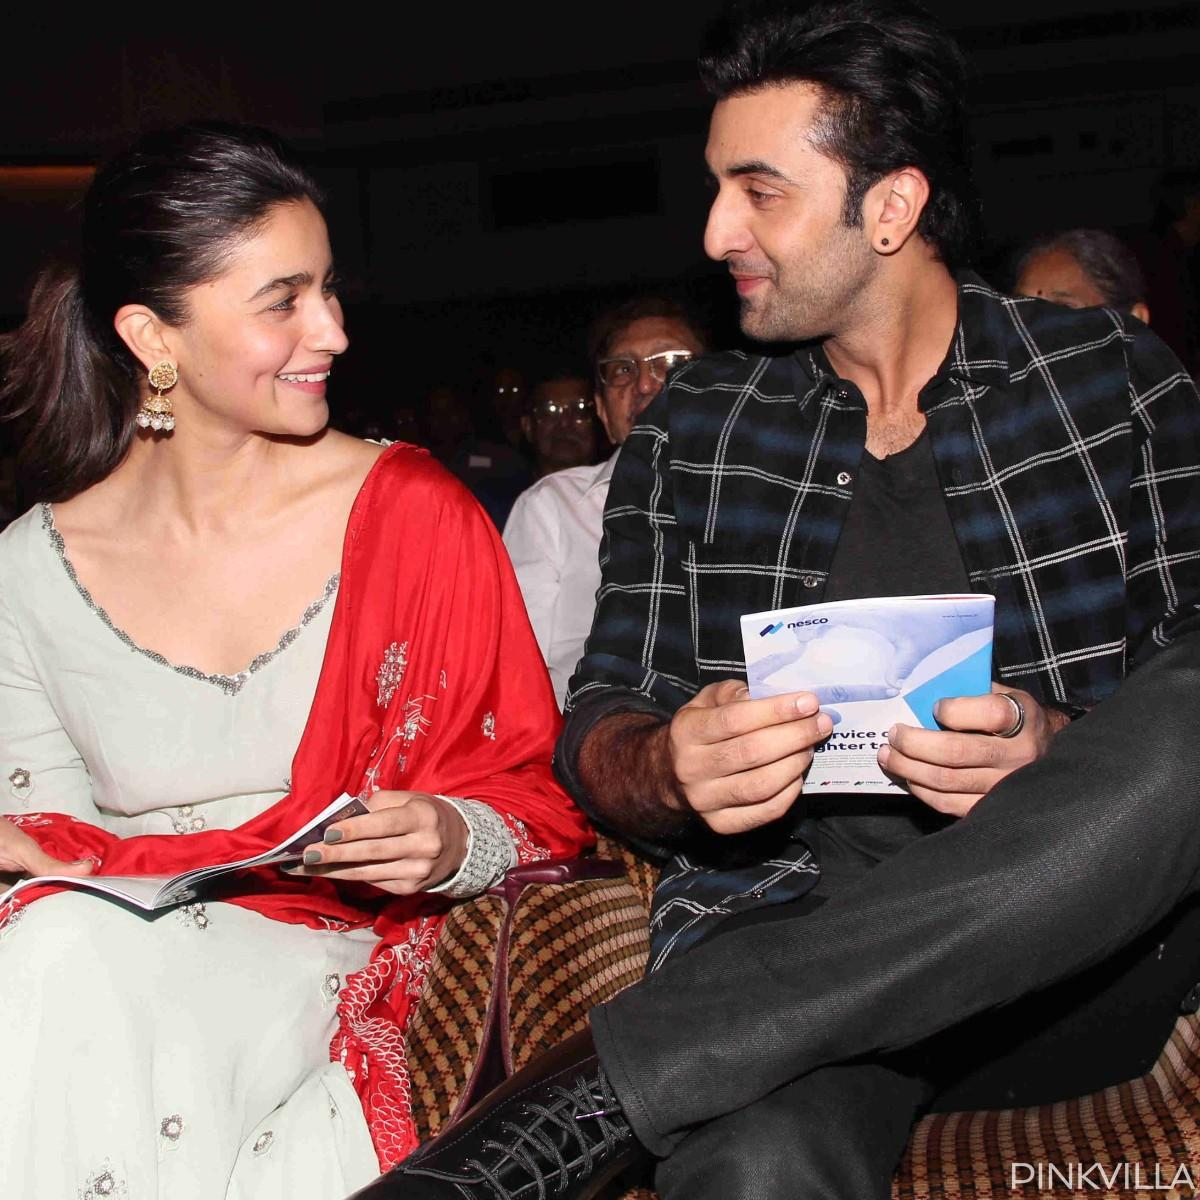 alia bhatt and ranbir kapoor look smitten with each other in these candid throwback photos 1